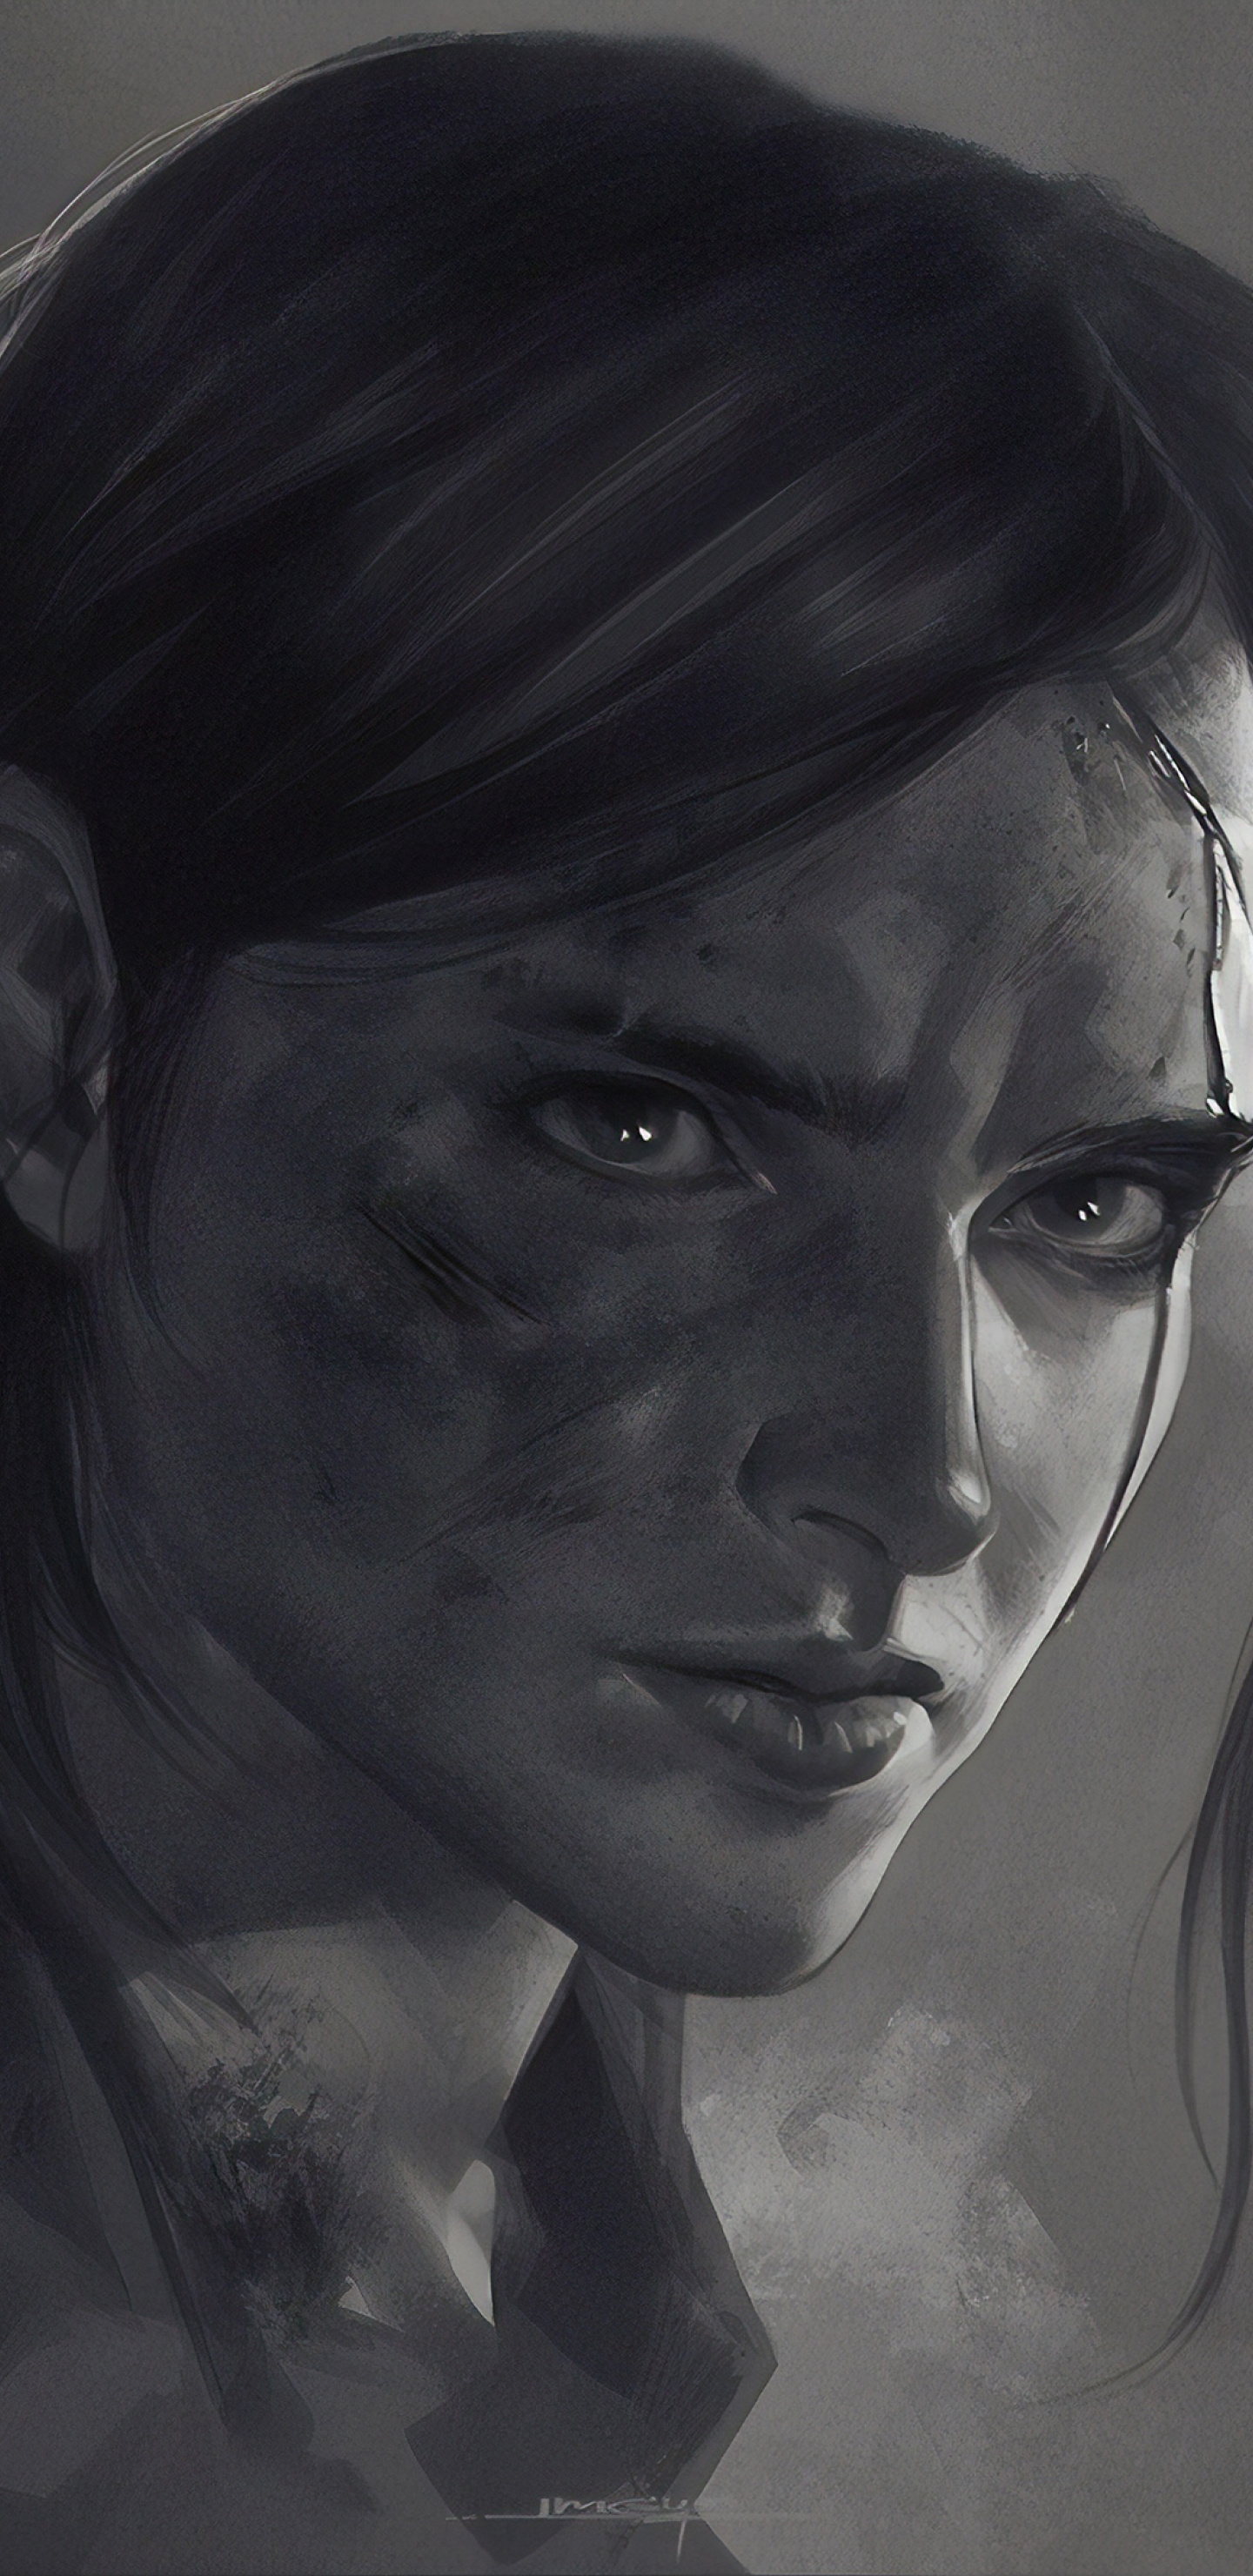 1440x2960 Ellie The Last Of Us Part 2 Samsung Galaxy Note 9